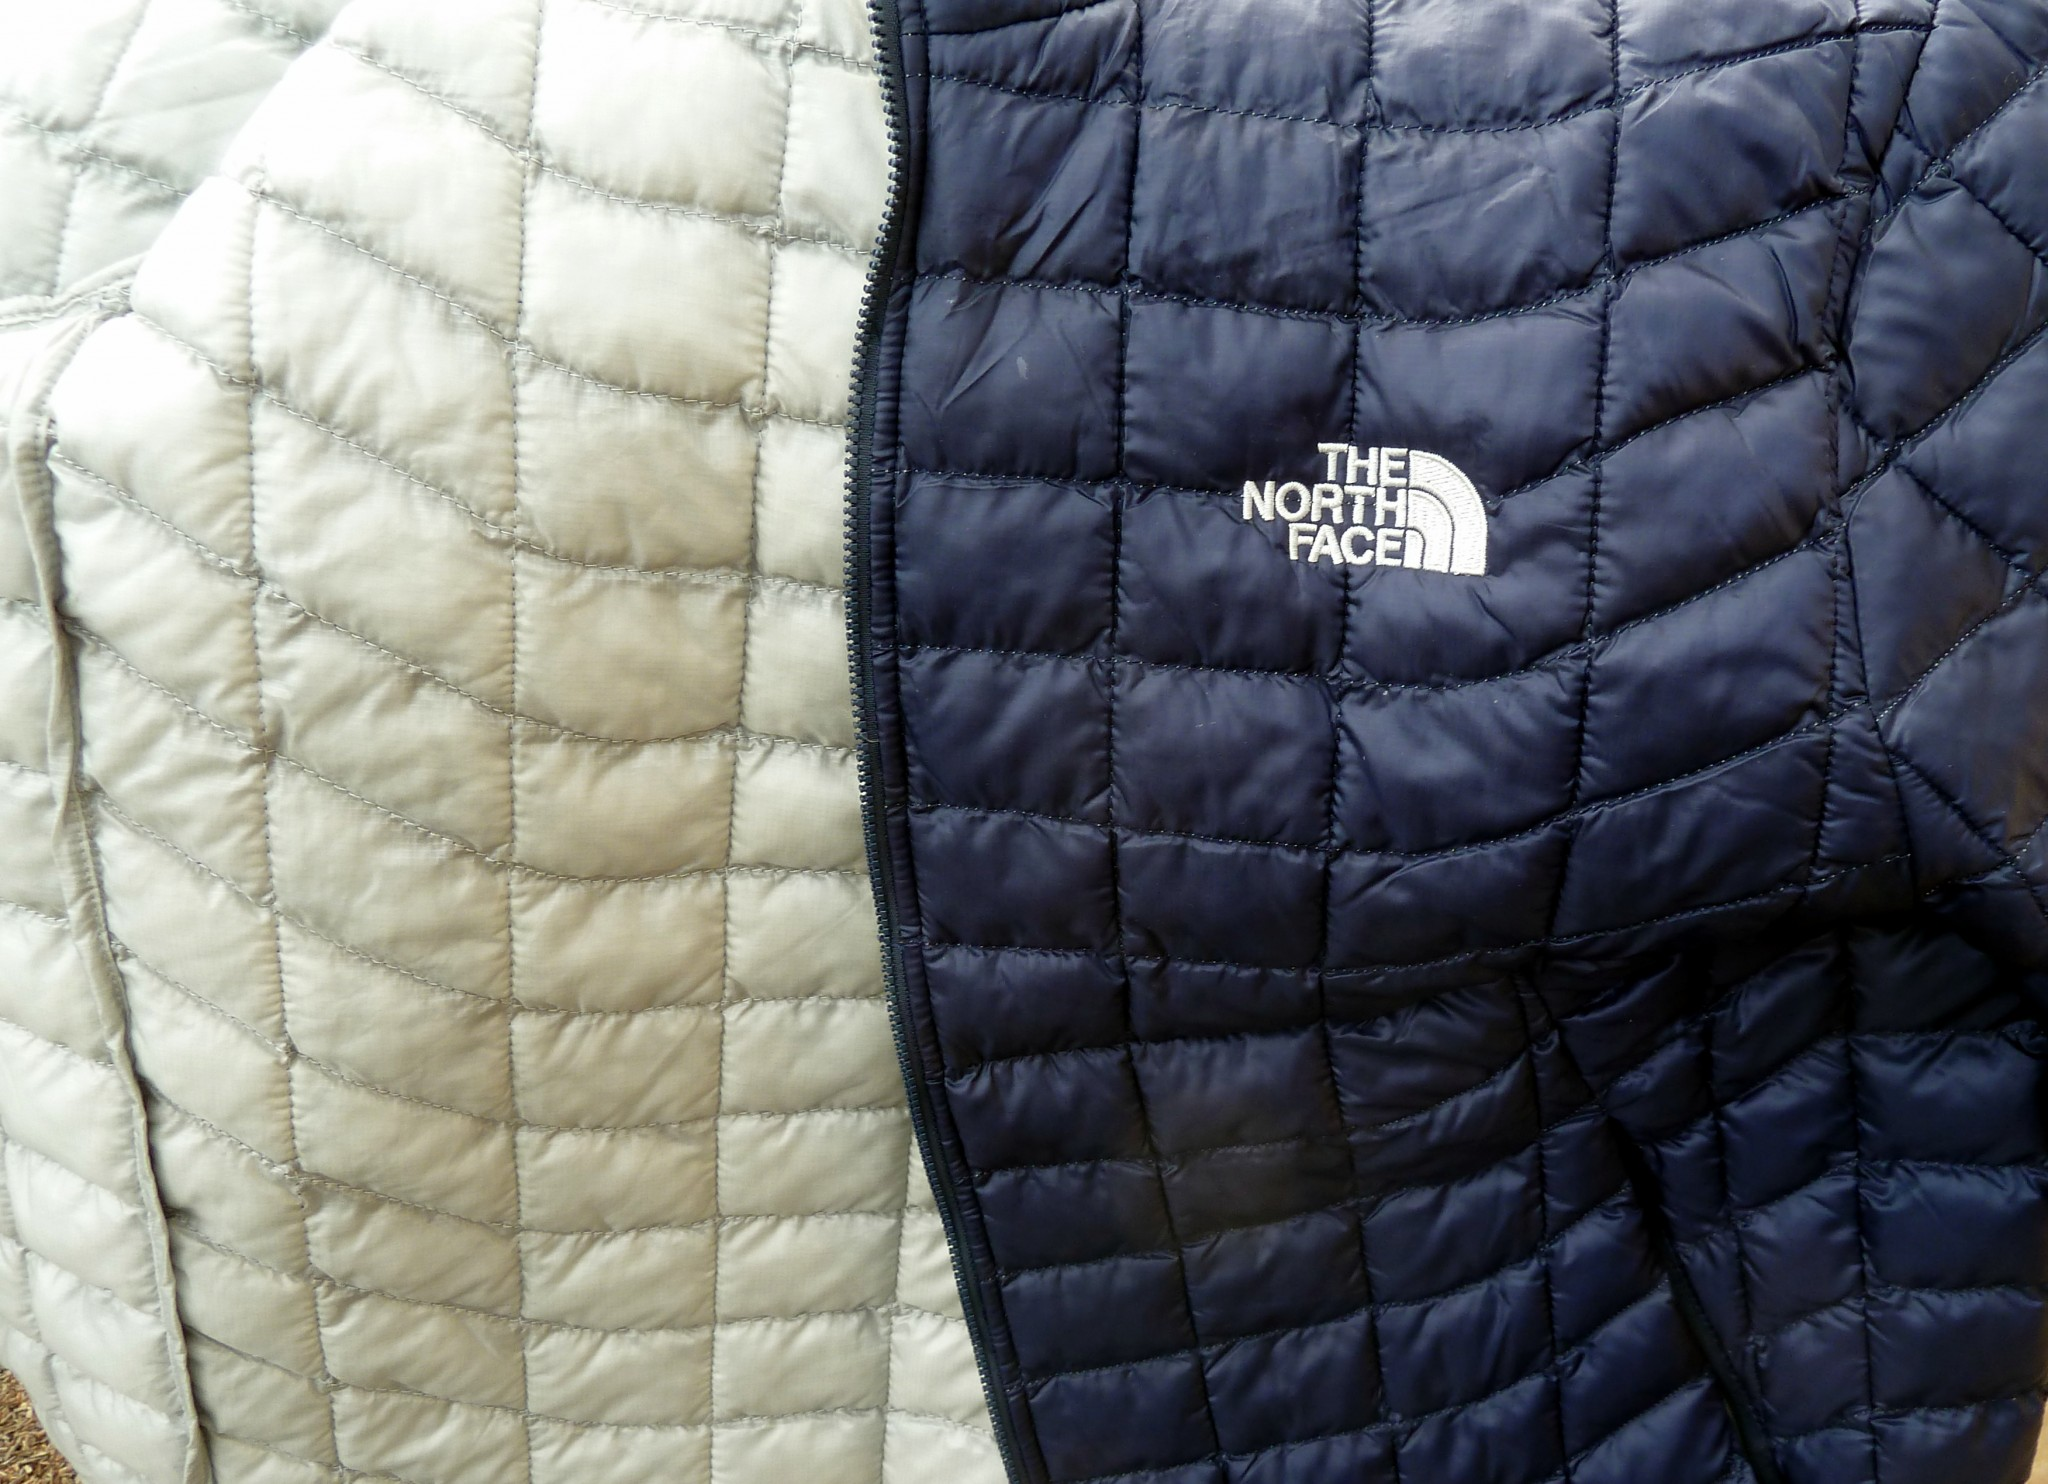 b7d51d80b The North Face Thermoball Jacket Review - FeedTheHabit.com